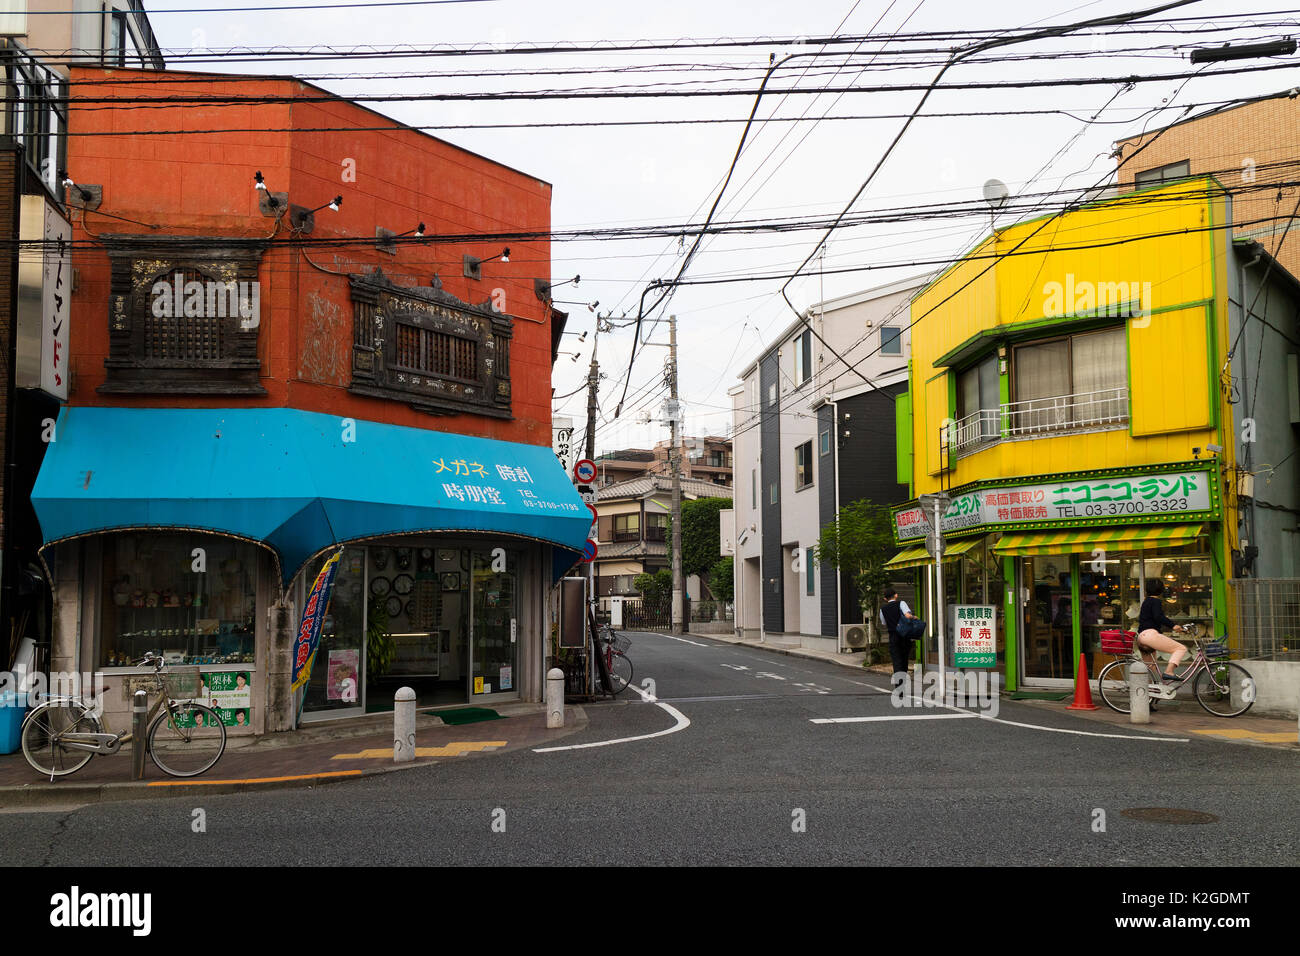 Tokyo, Japan -  May 11, 2017: Colorful shops at a corner of the street in the neighbourhood, - Stock Image